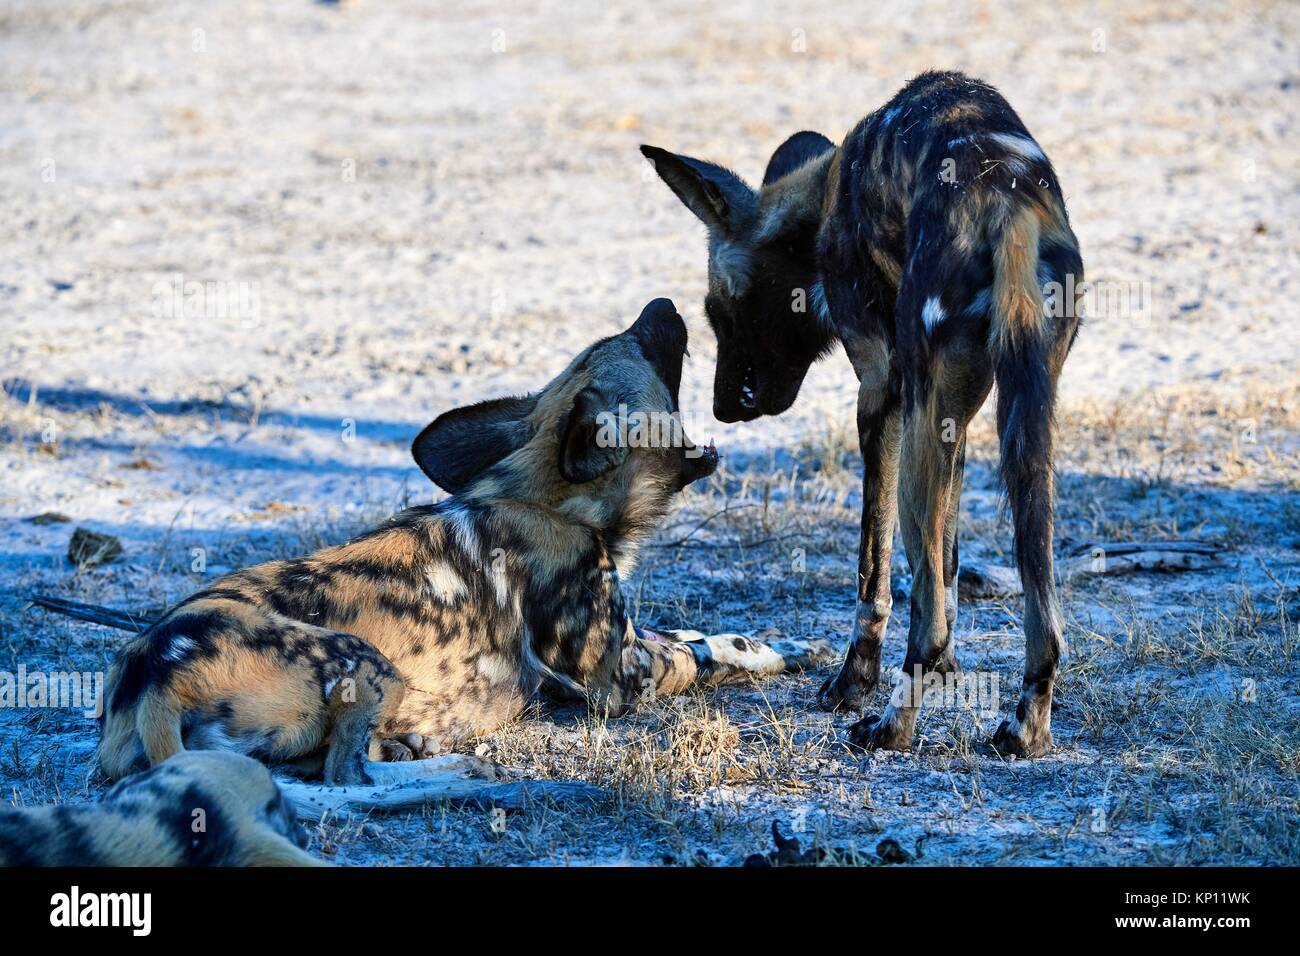 African wild dogs (Lycaon pictus) greeting each other. Moremi National Park, Okavango delta, Botswana, Southern - Stock Image